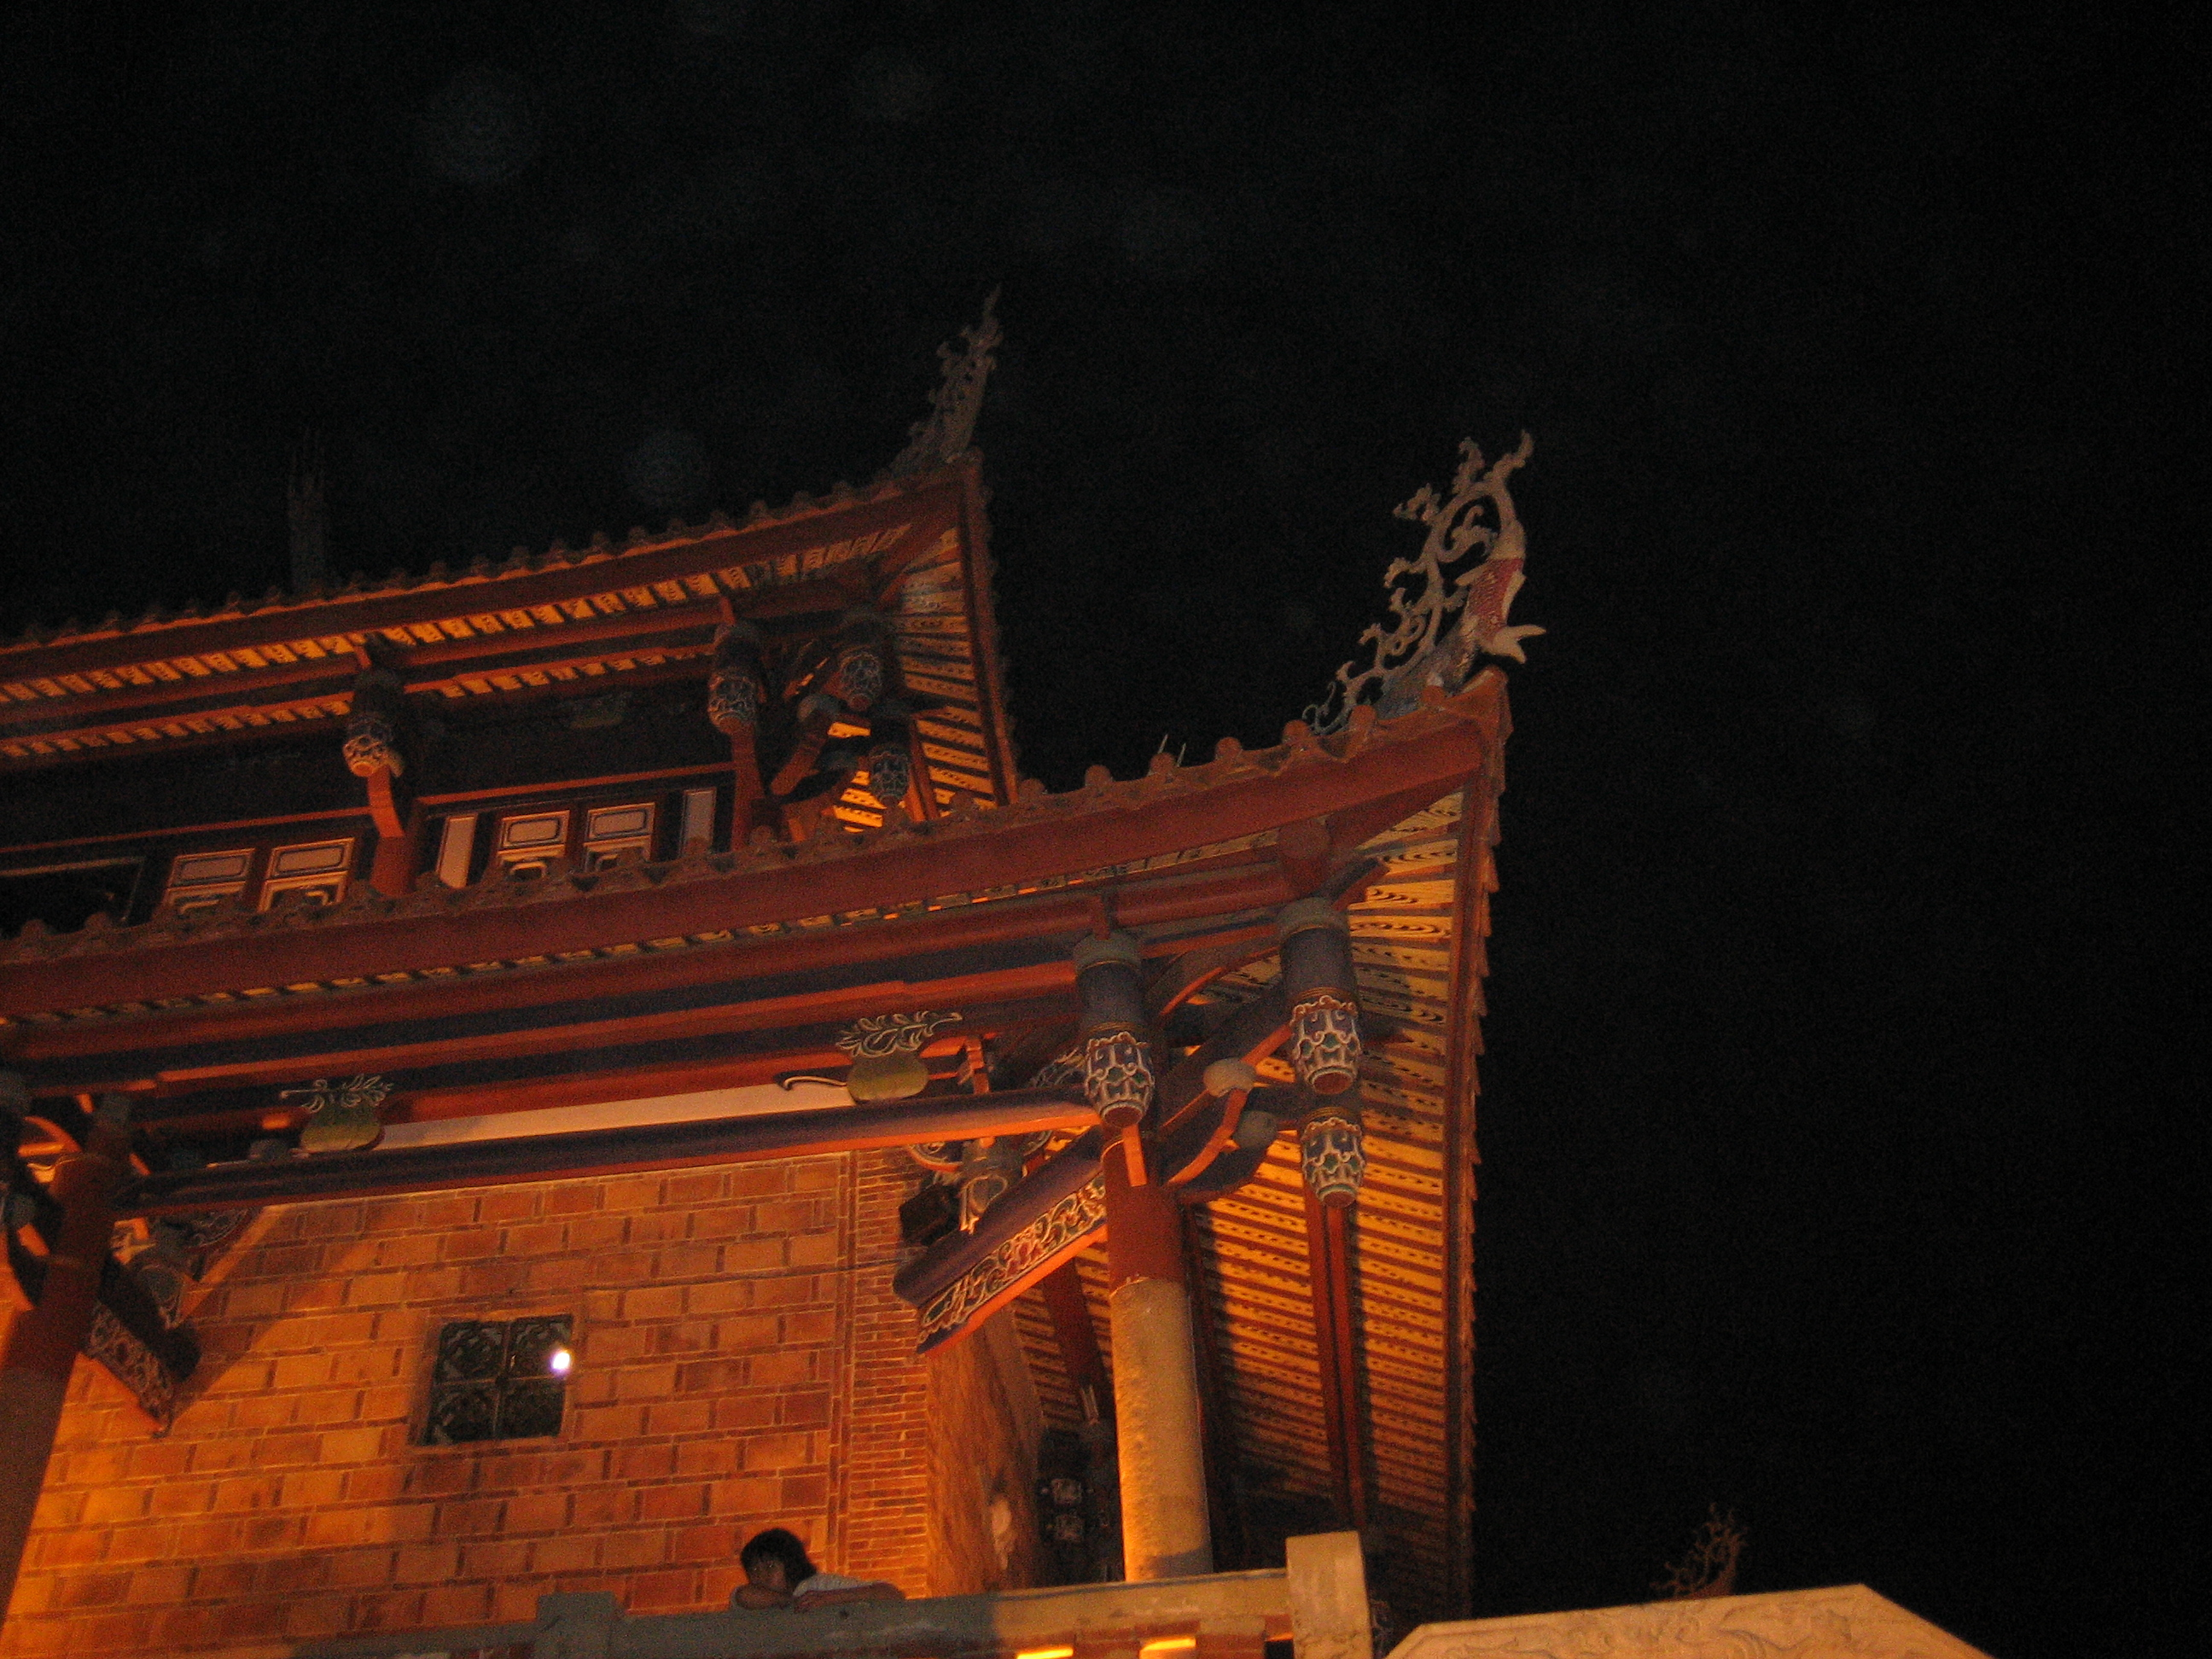 Chikan tower roof